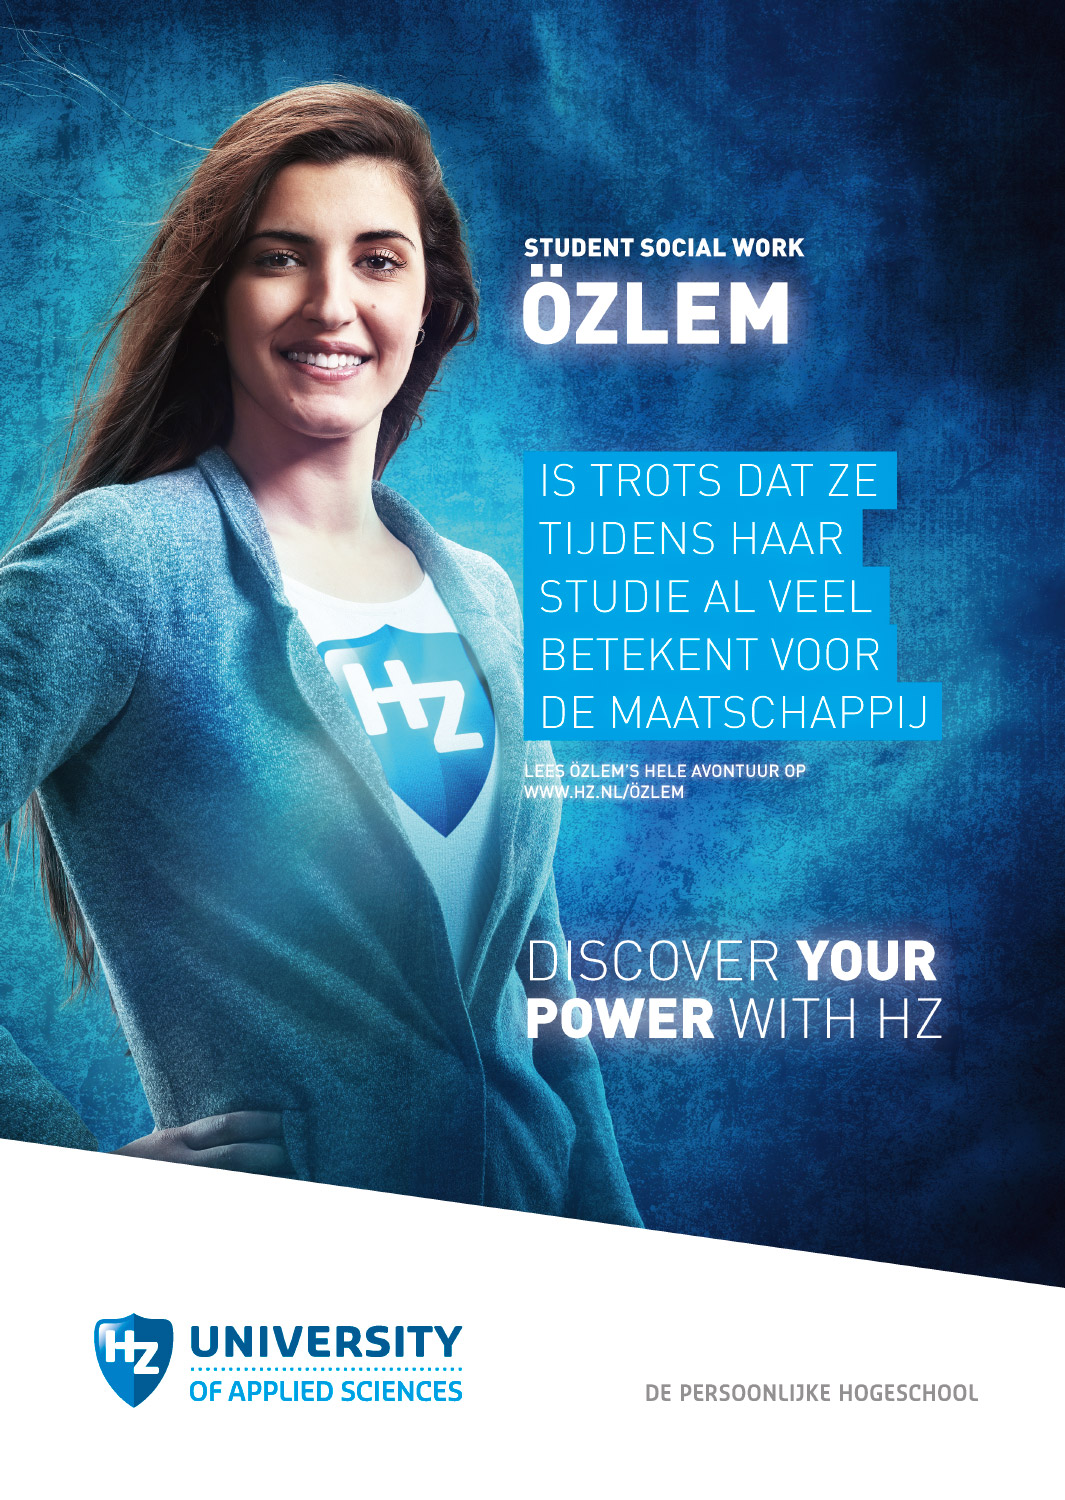 Copy of Studioportret fotografie voor 'Discover your power with HZ' campagne